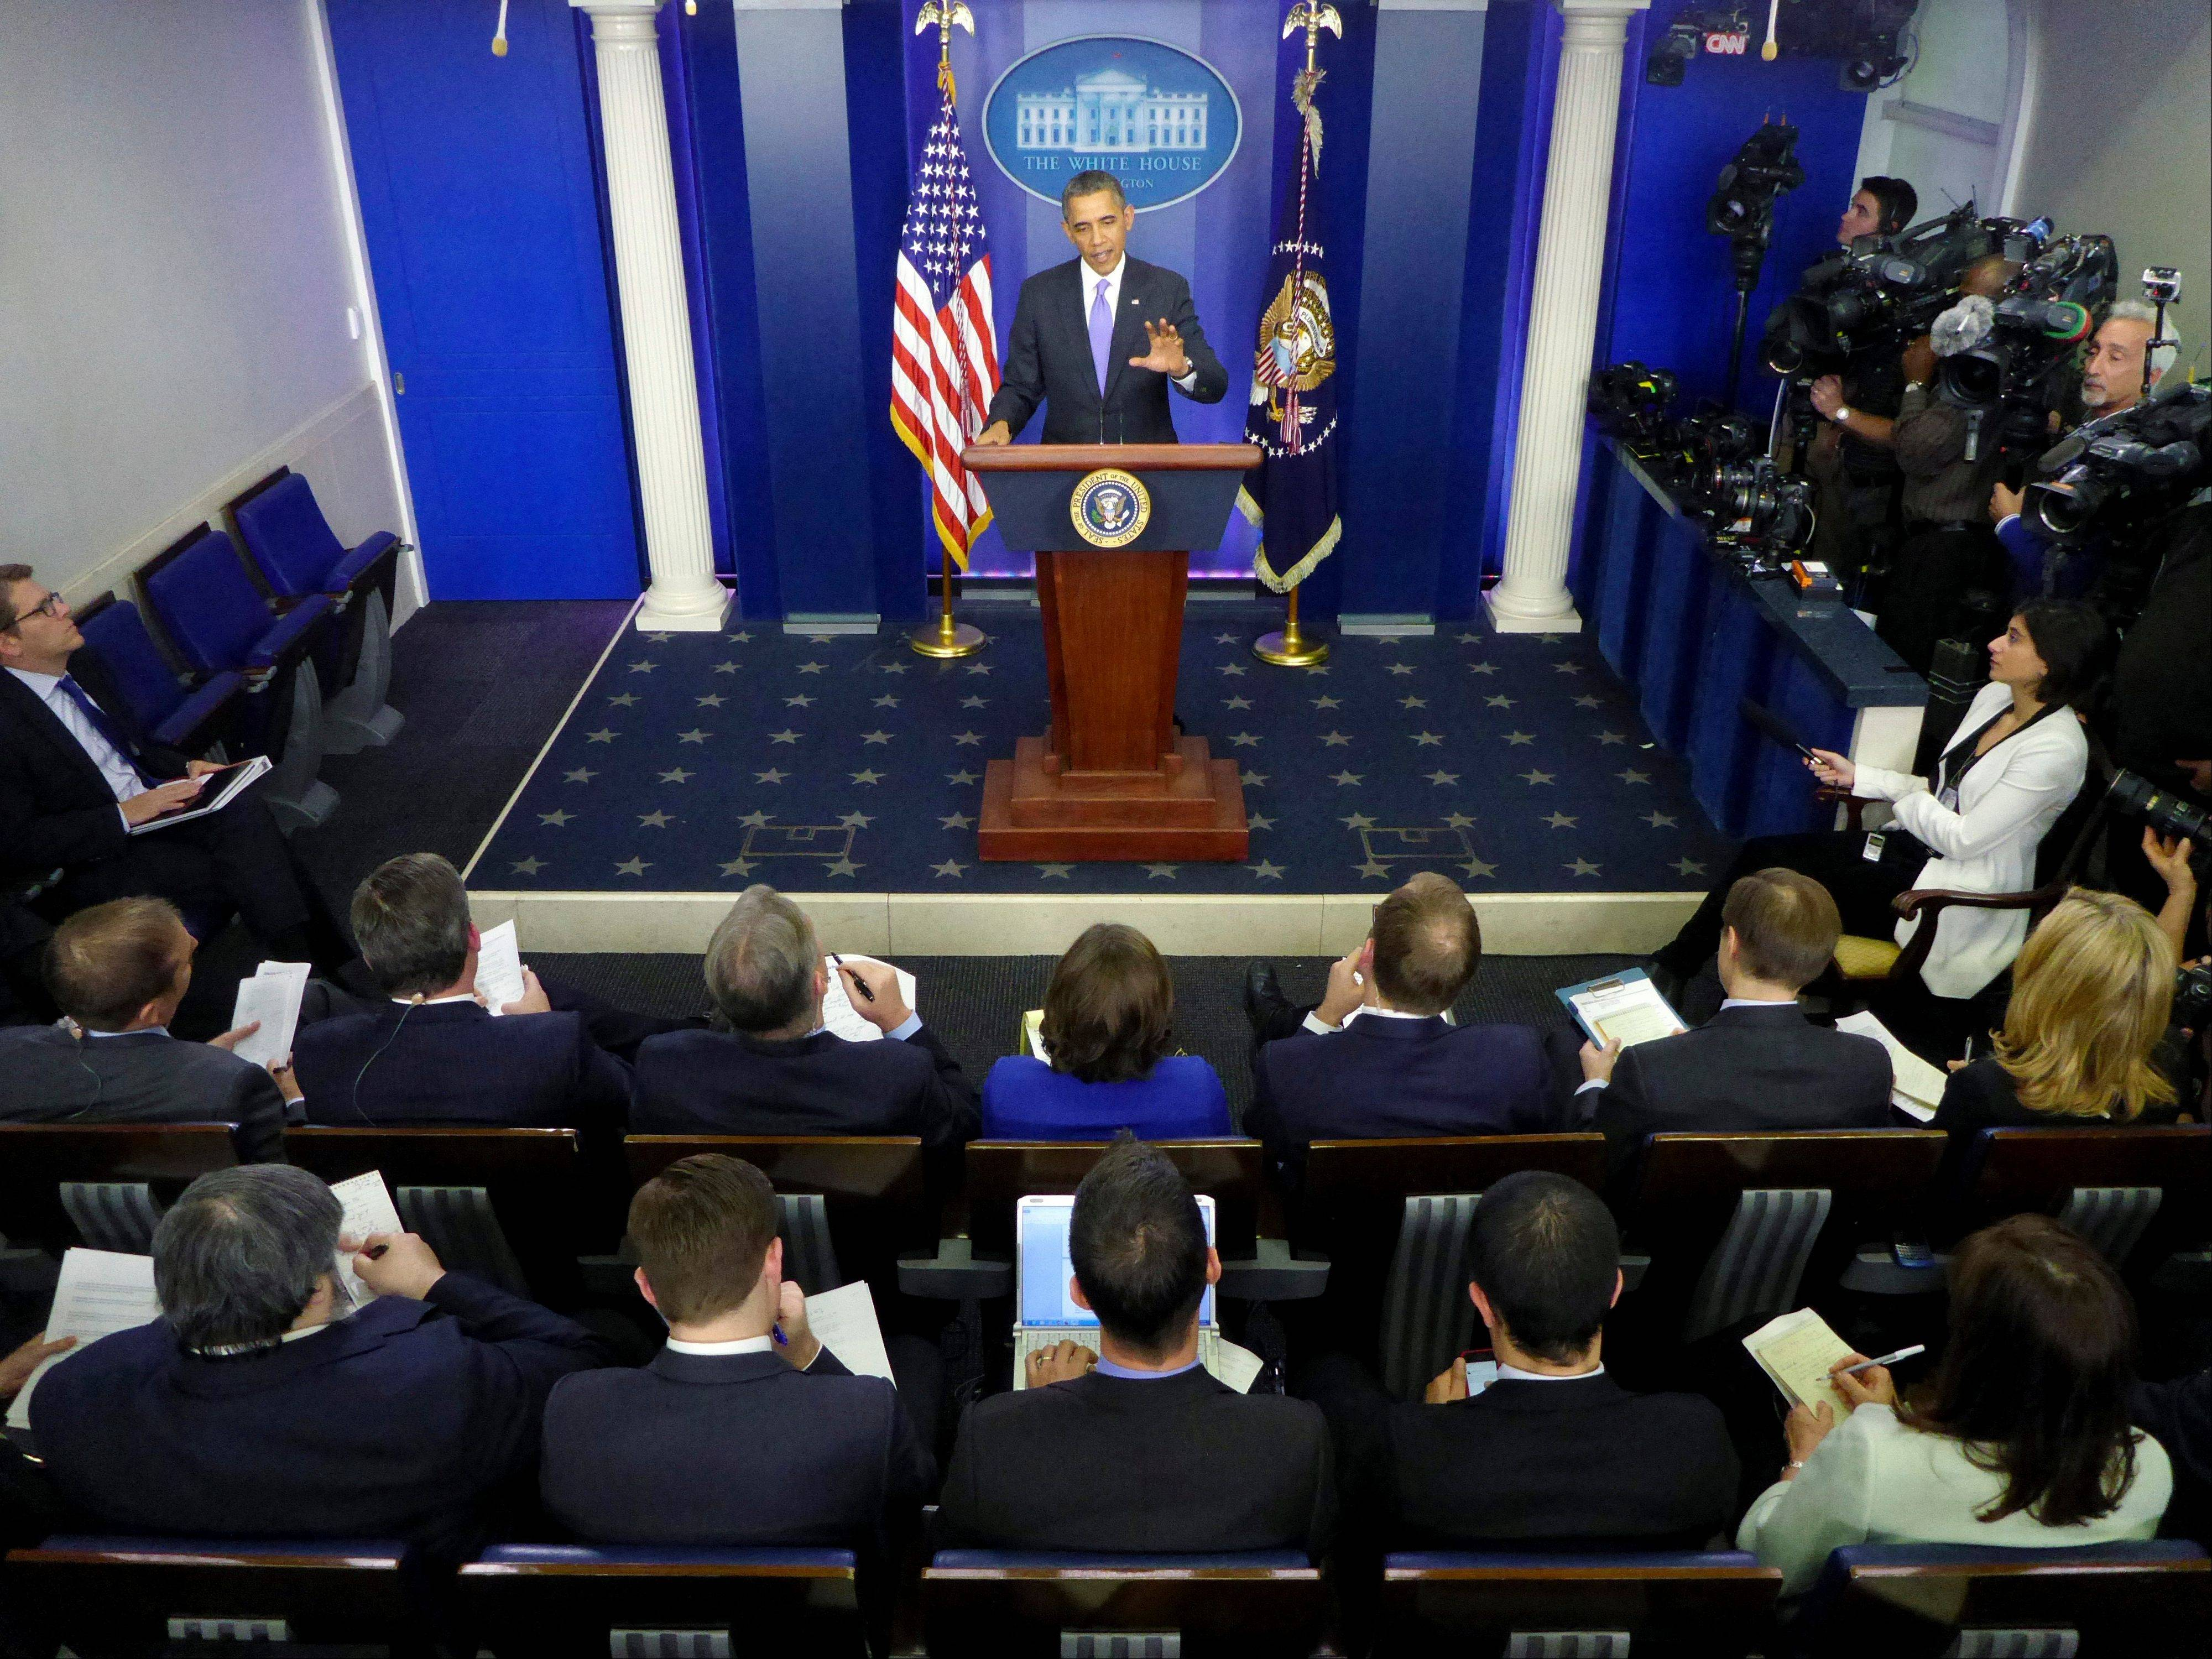 President Barack Obama speaks during his end-of-the-year news conference Friday in the Brady Press Room at the White House in Washington.